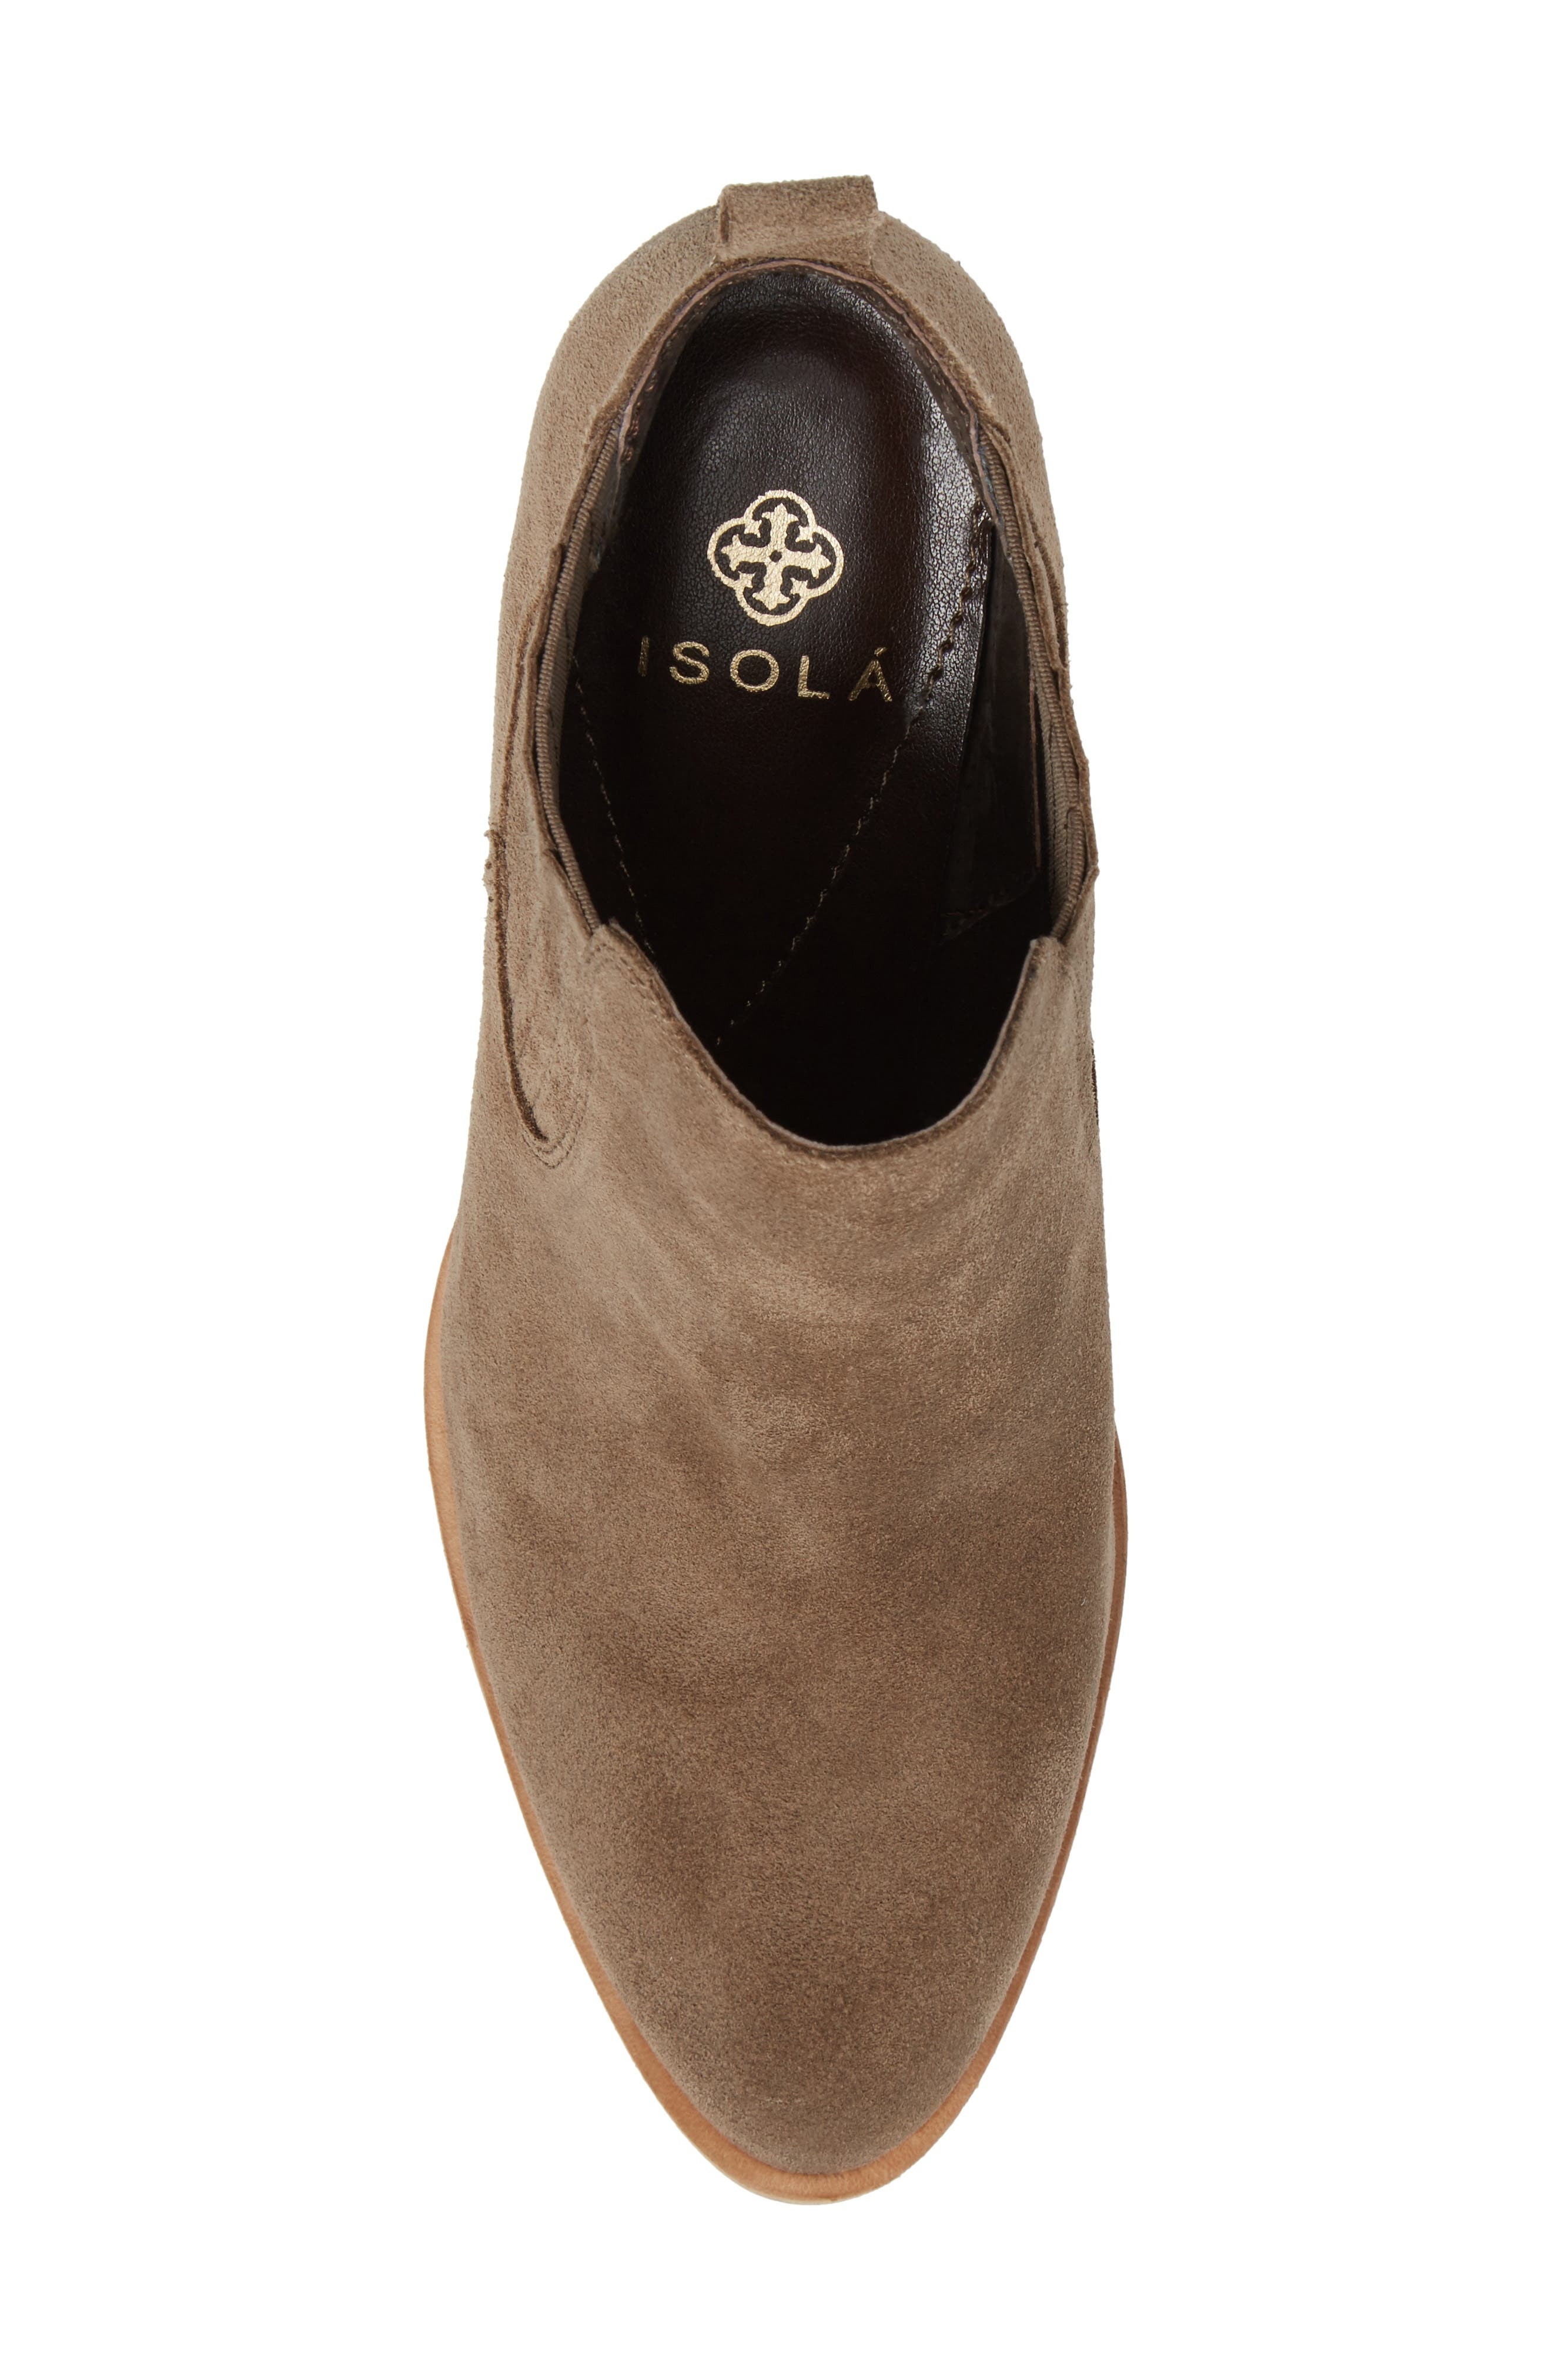 ISOLÁ, Olicia Gored Bootie, Alternate thumbnail 5, color, MARMOTTA LIGHT GREY SUEDE